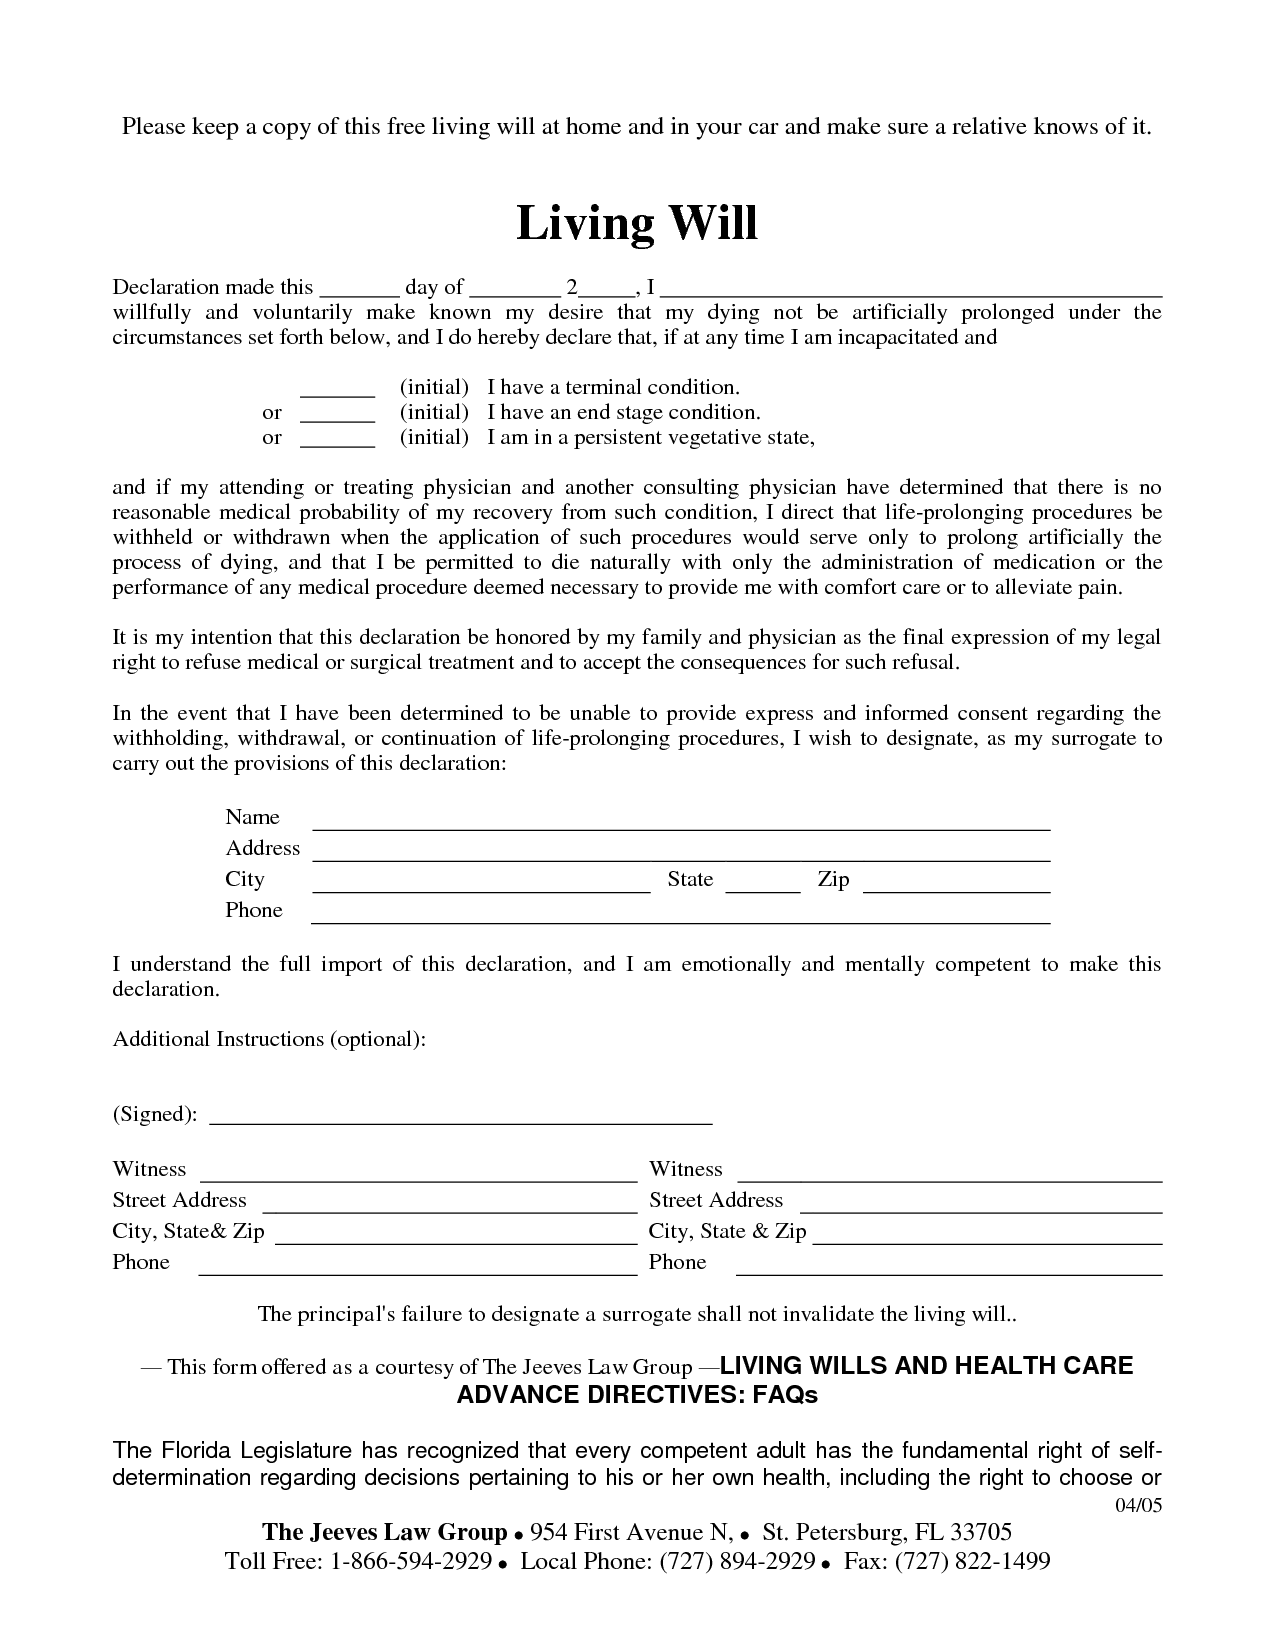 sample of living will template free copy of living will by richard cataman living will